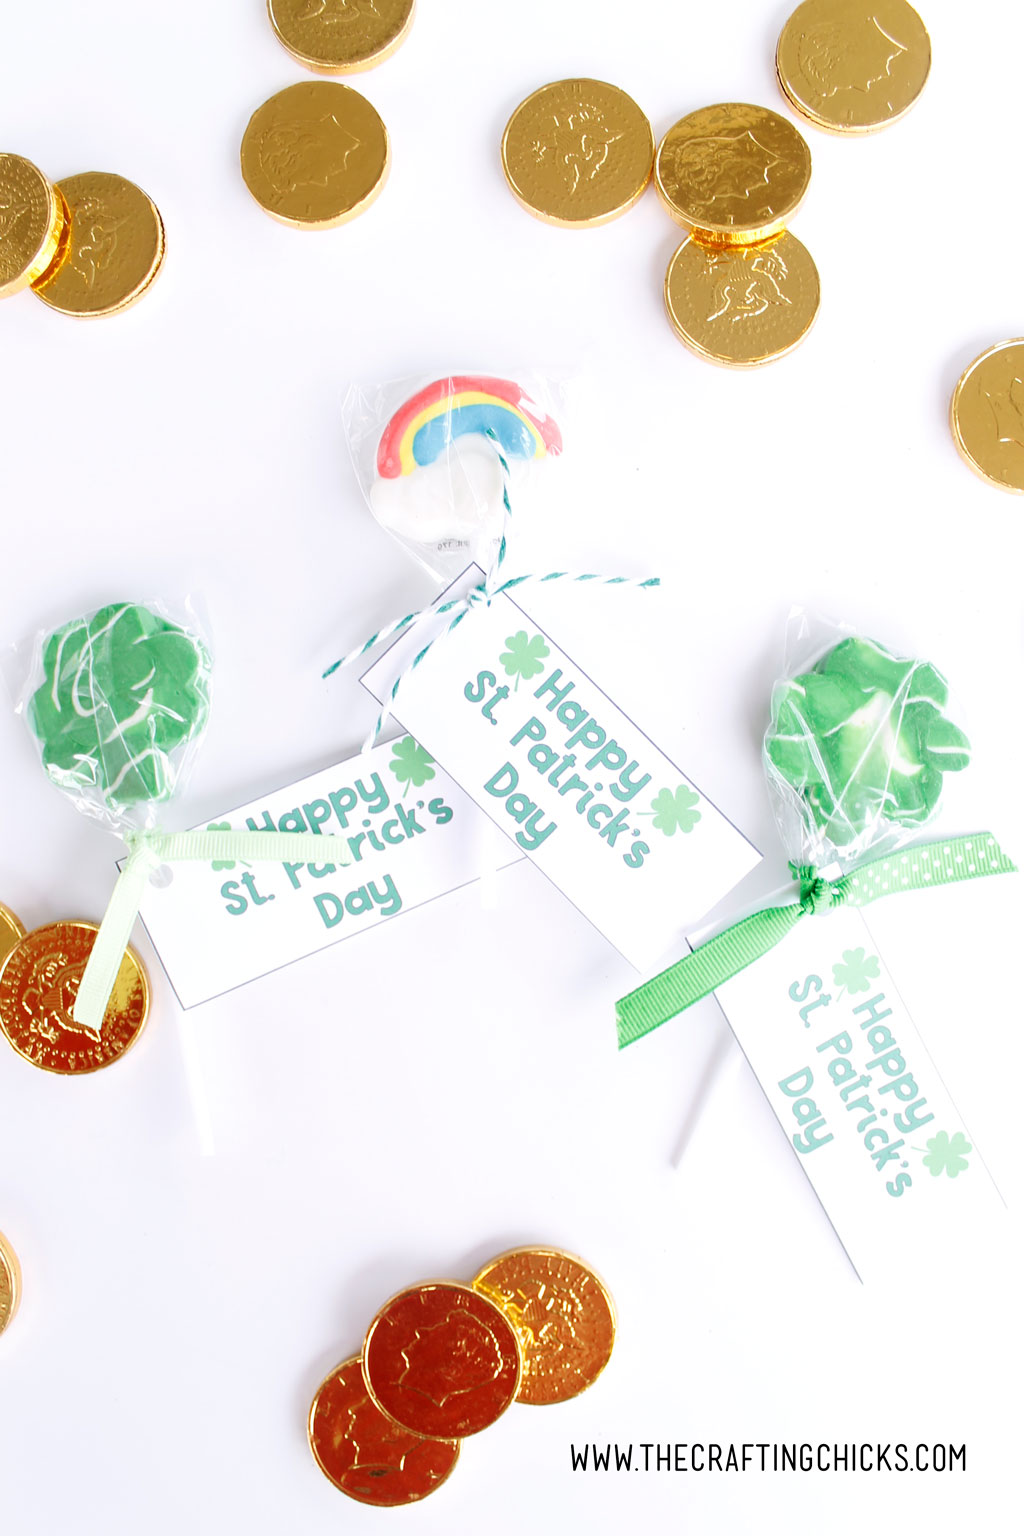 Are you looking for a way to show your friends and family you're lucky to have them this St. Patrick's Day? These adorable St. Patrick's Day Treat Tags are the perfect way. Print them out and add them to any gift.